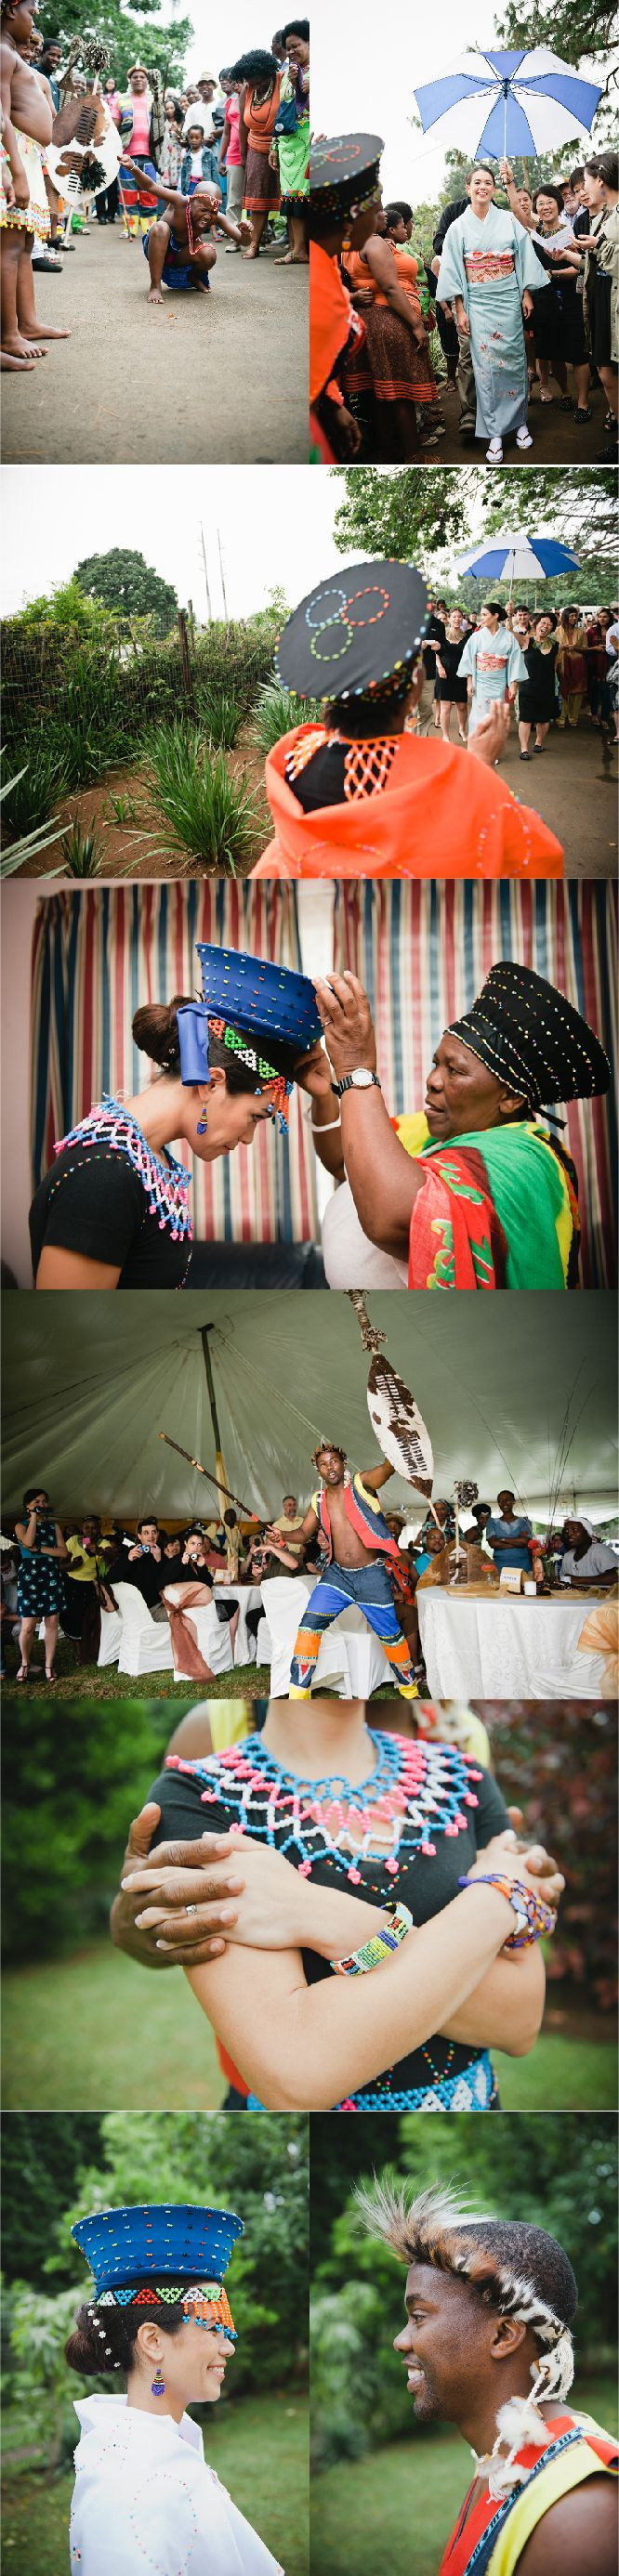 Multicultural Japanese Zulu Wedding by Bright Girl Photo ʕ´•ᴥ•`ʔ http://weddingnouveau.com/2012/11/japanese-zulu-wedding-in-south-africa/